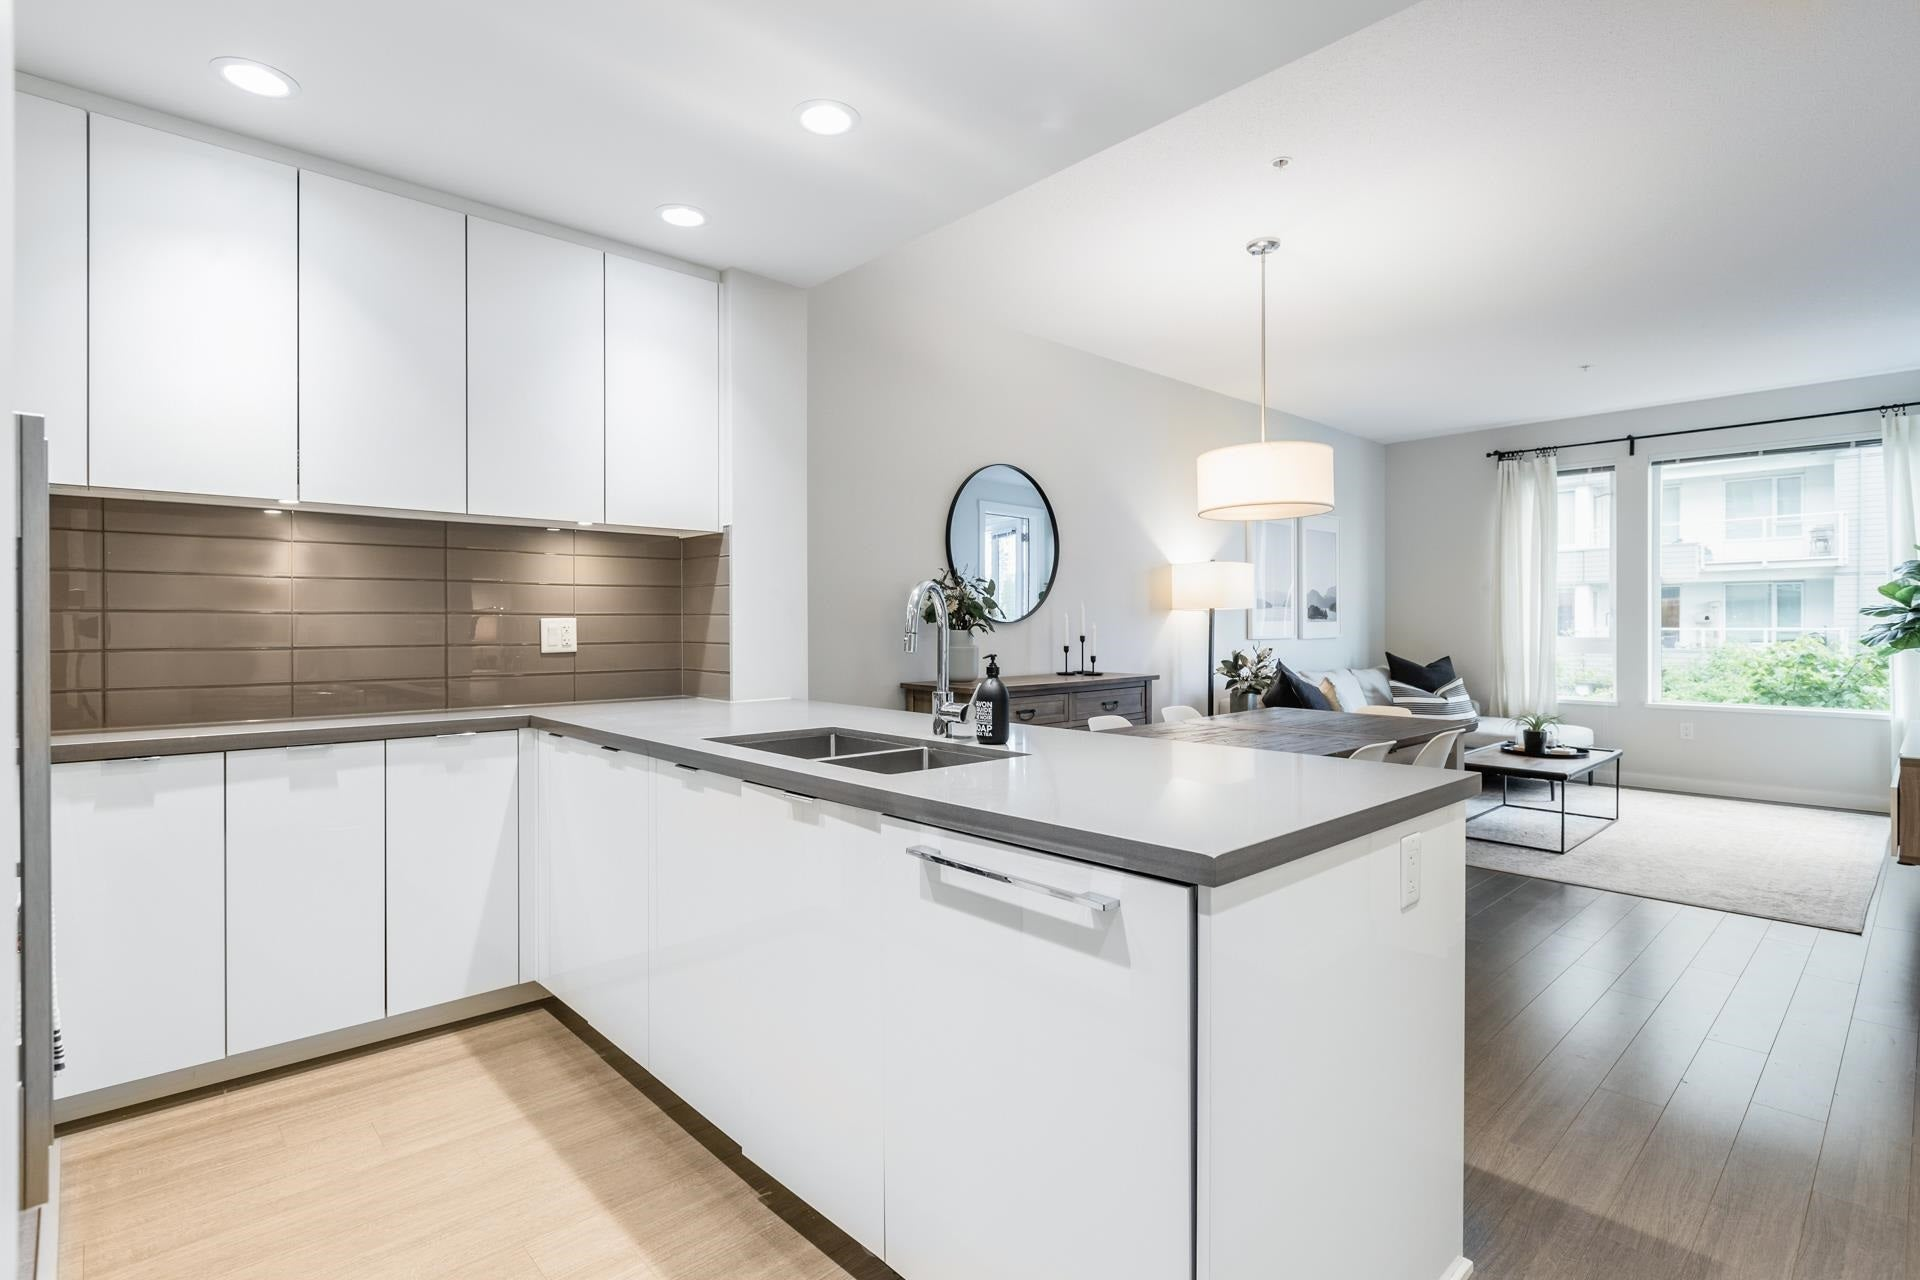 207 255 W 1ST STREET - Lower Lonsdale Apartment/Condo for sale, 2 Bedrooms (R2603882) - #11